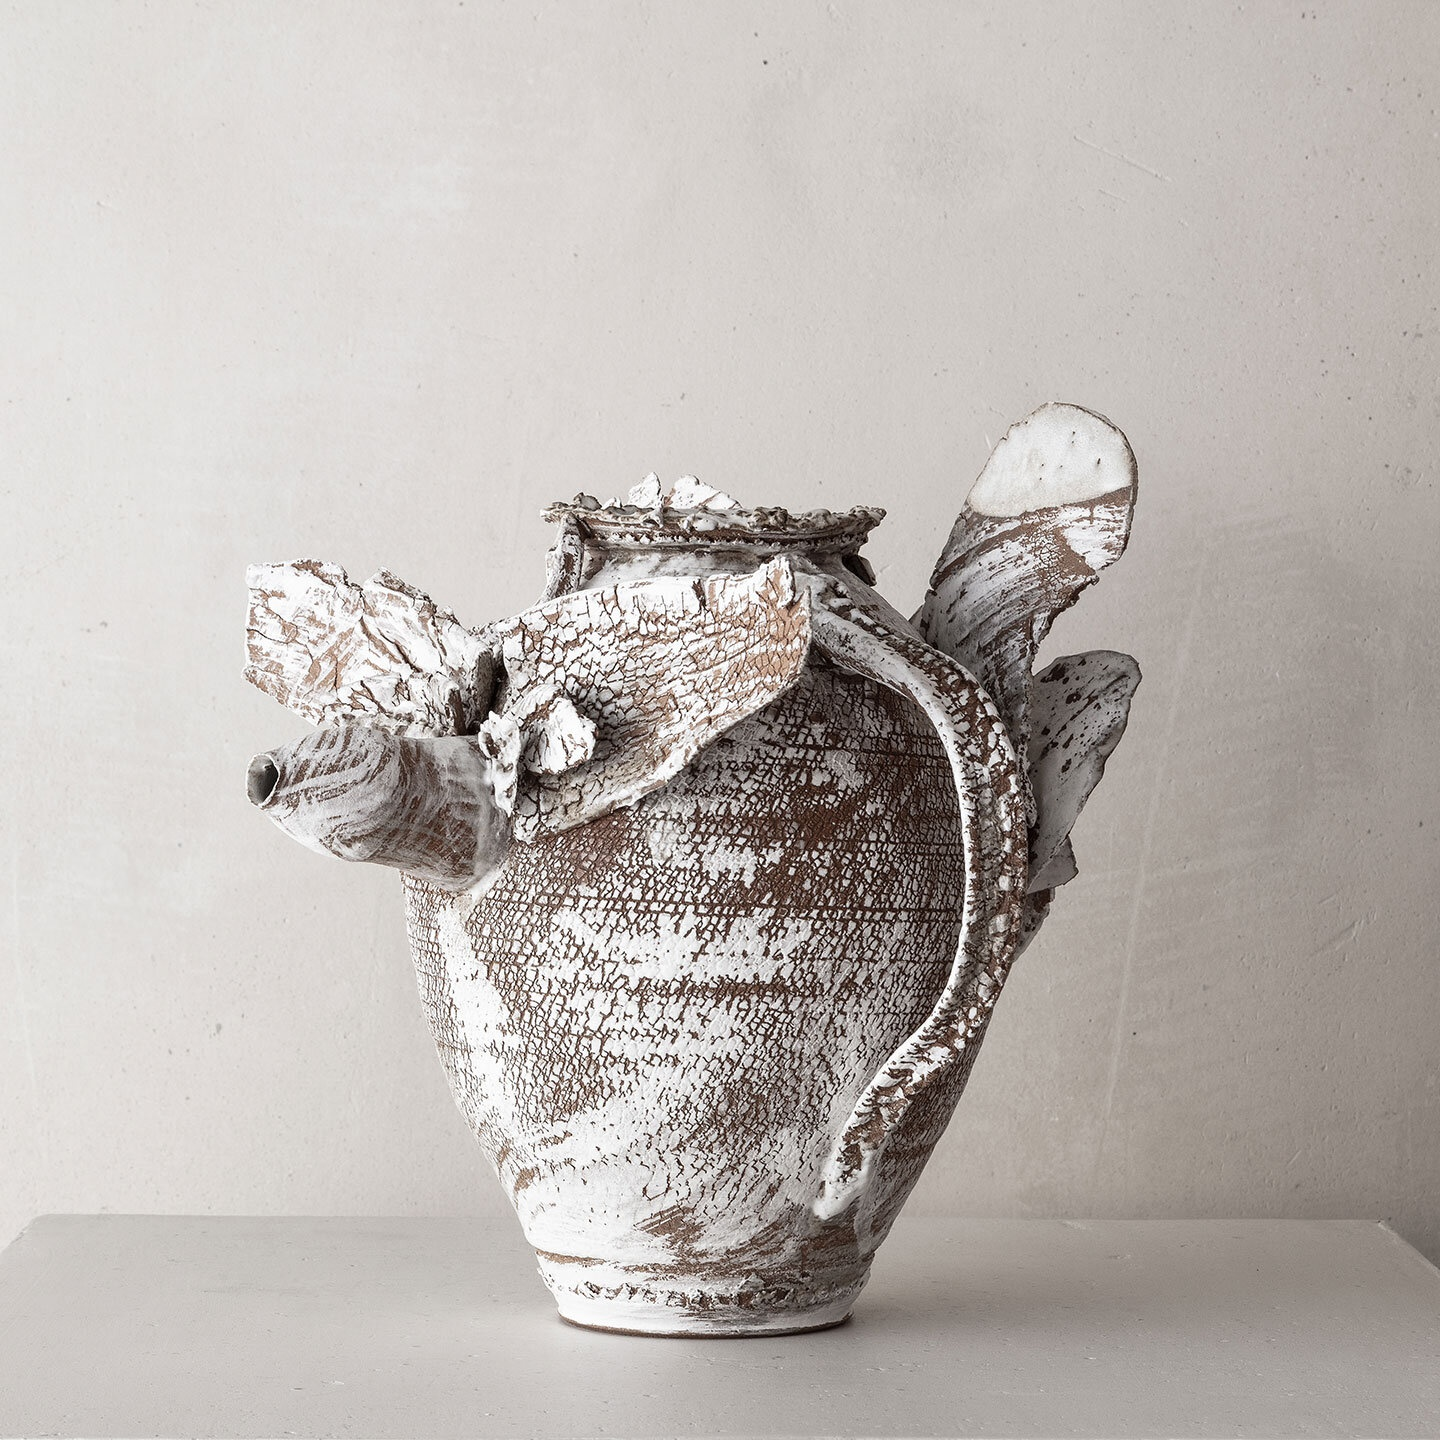 CHTHONIC VESSEL 23Peter Speliopoulos, Peter Speliopoulos Ceramics, Peter Speliopoulos Artist, Peter Speliopoulos Fashion Designer, Contemporary Ceramics, Contemporary Greek Ceramics, Interior Design Accessories.